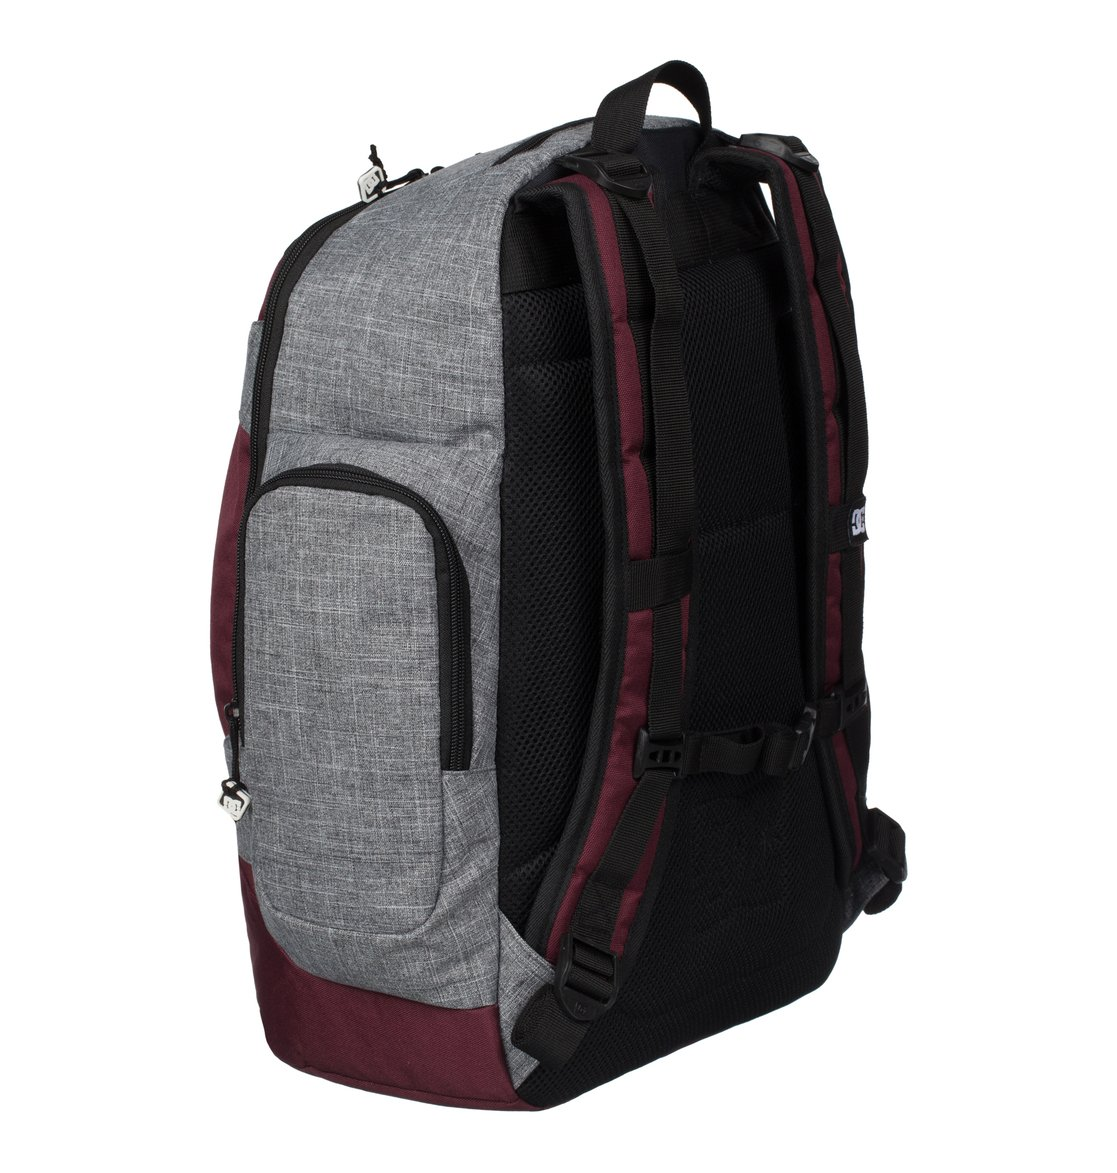 b220e748b8 2 Wolfbred Backpack 3153040103 DC Shoes